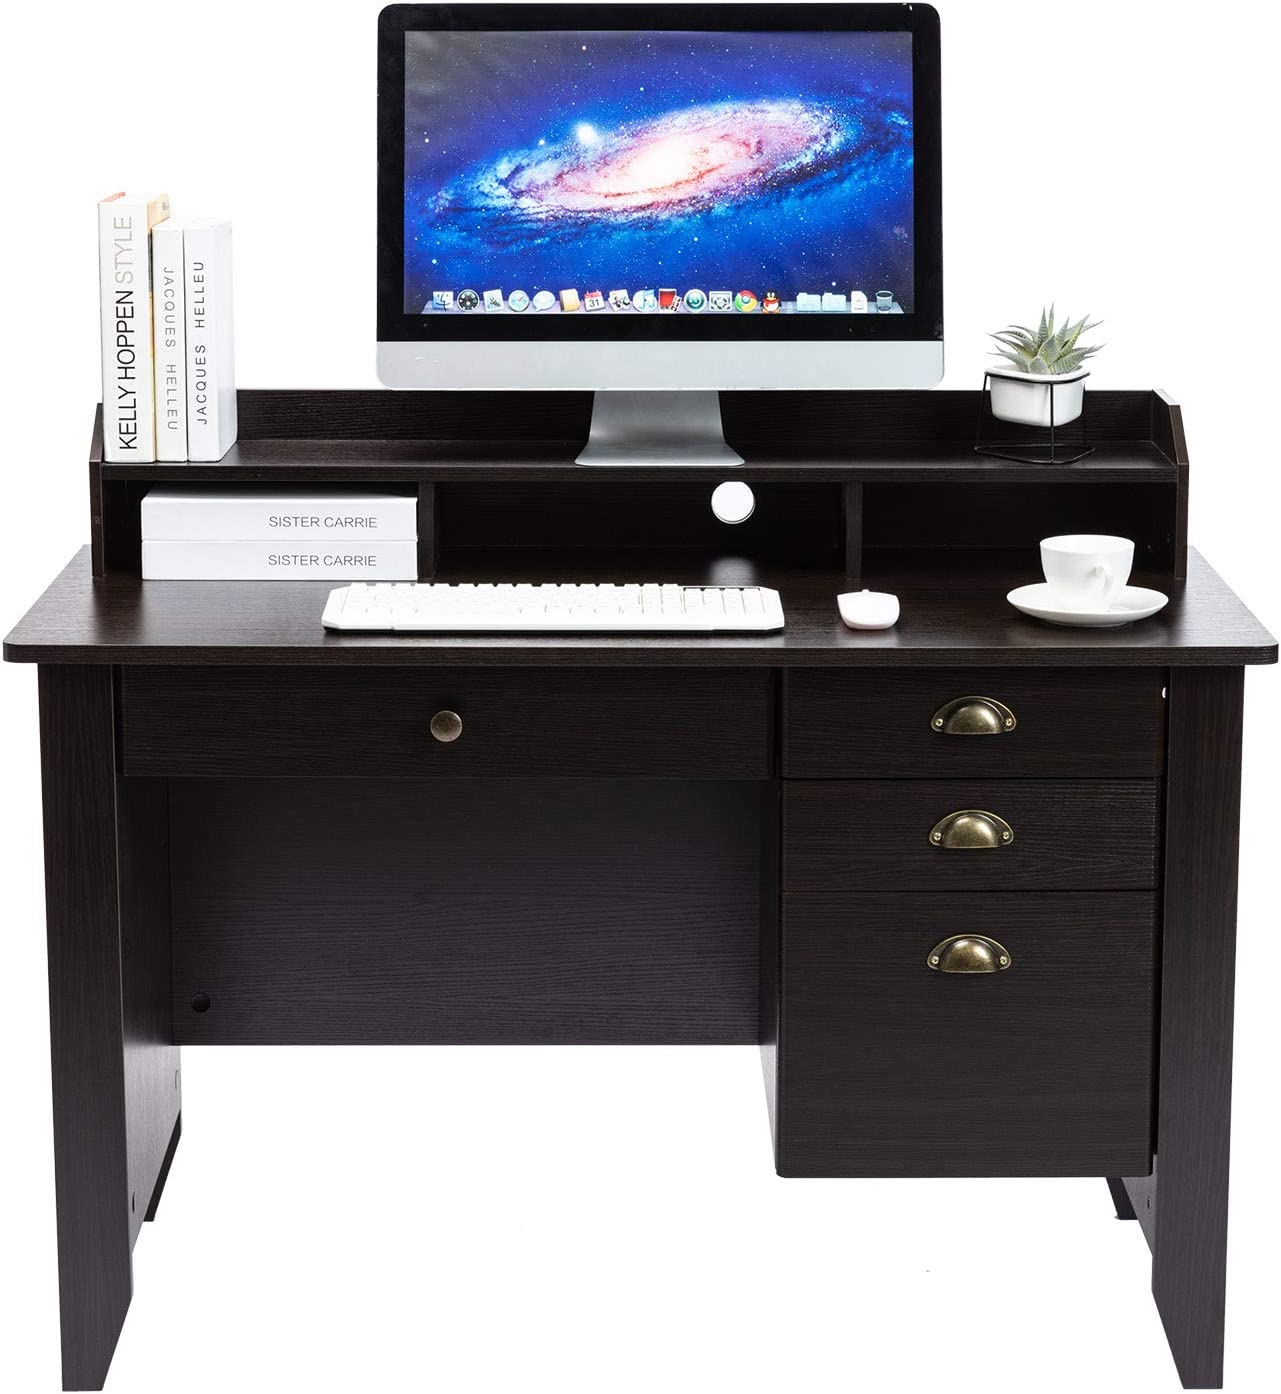 AUXSOUL Computer Desk with 4 Drawers and Hutch Shelf - Classical Home Office Desk - Spacious Student Writing Desk - Vintage Style Study Table, Workbench(Dark Chocolate)